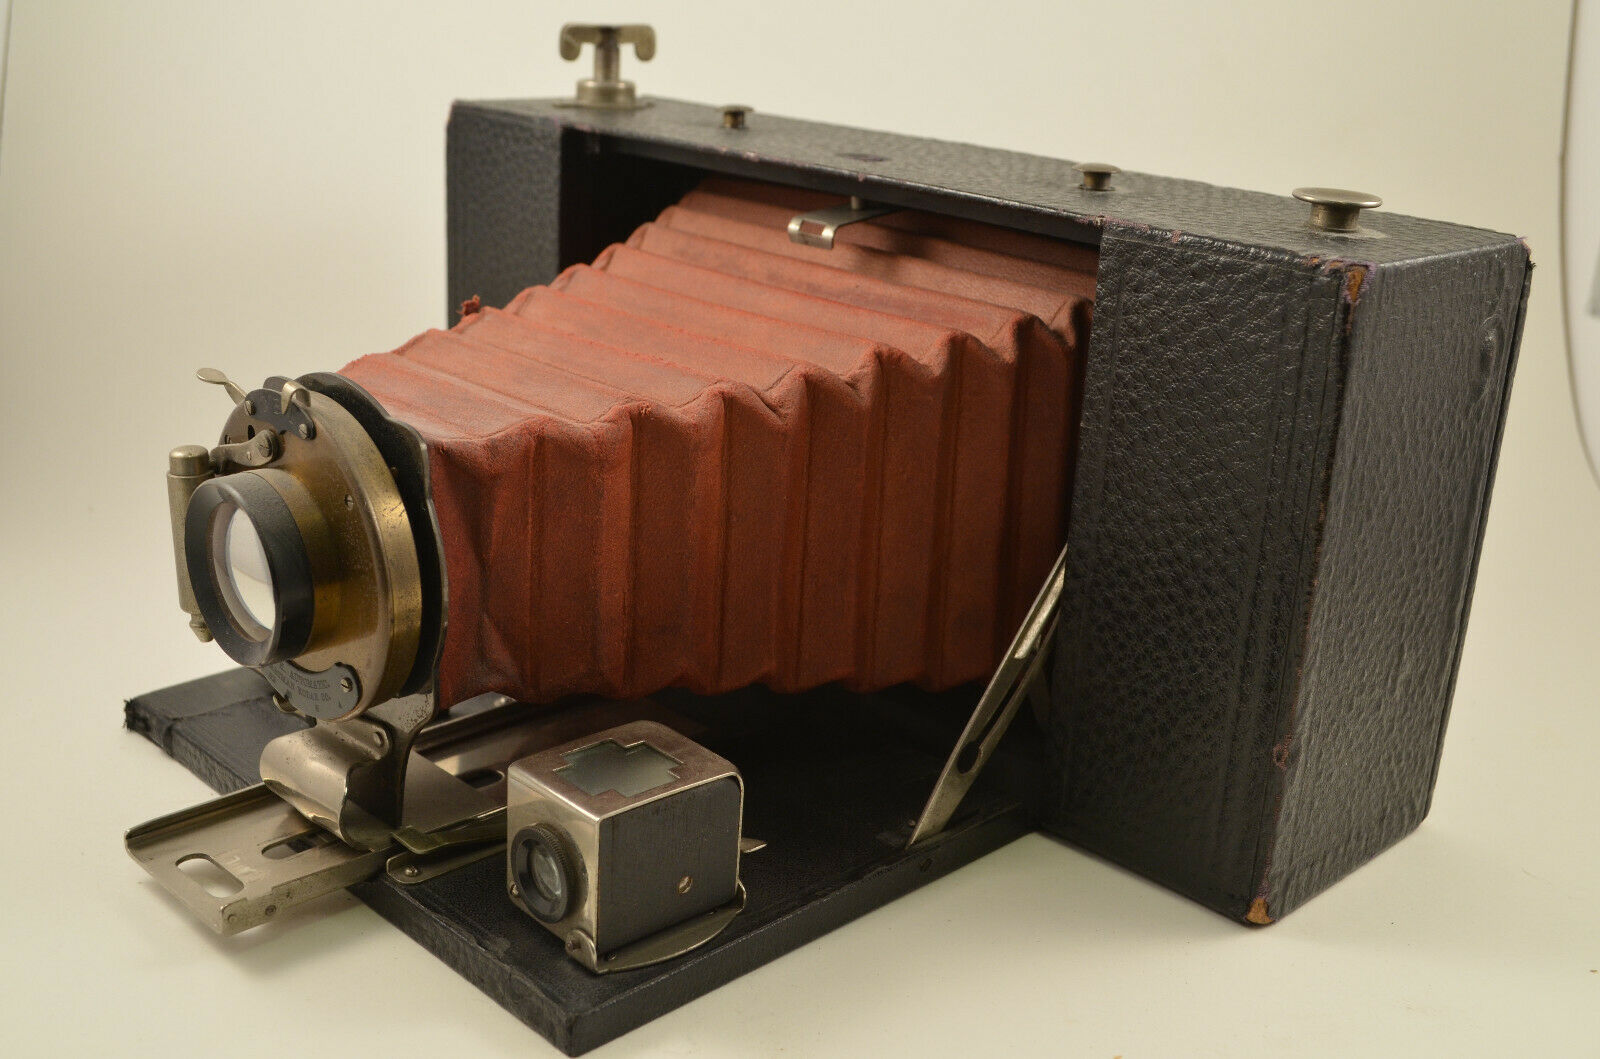 Kodak No. 3-A Folding Brownie Camera Model A 1909 - $83.00